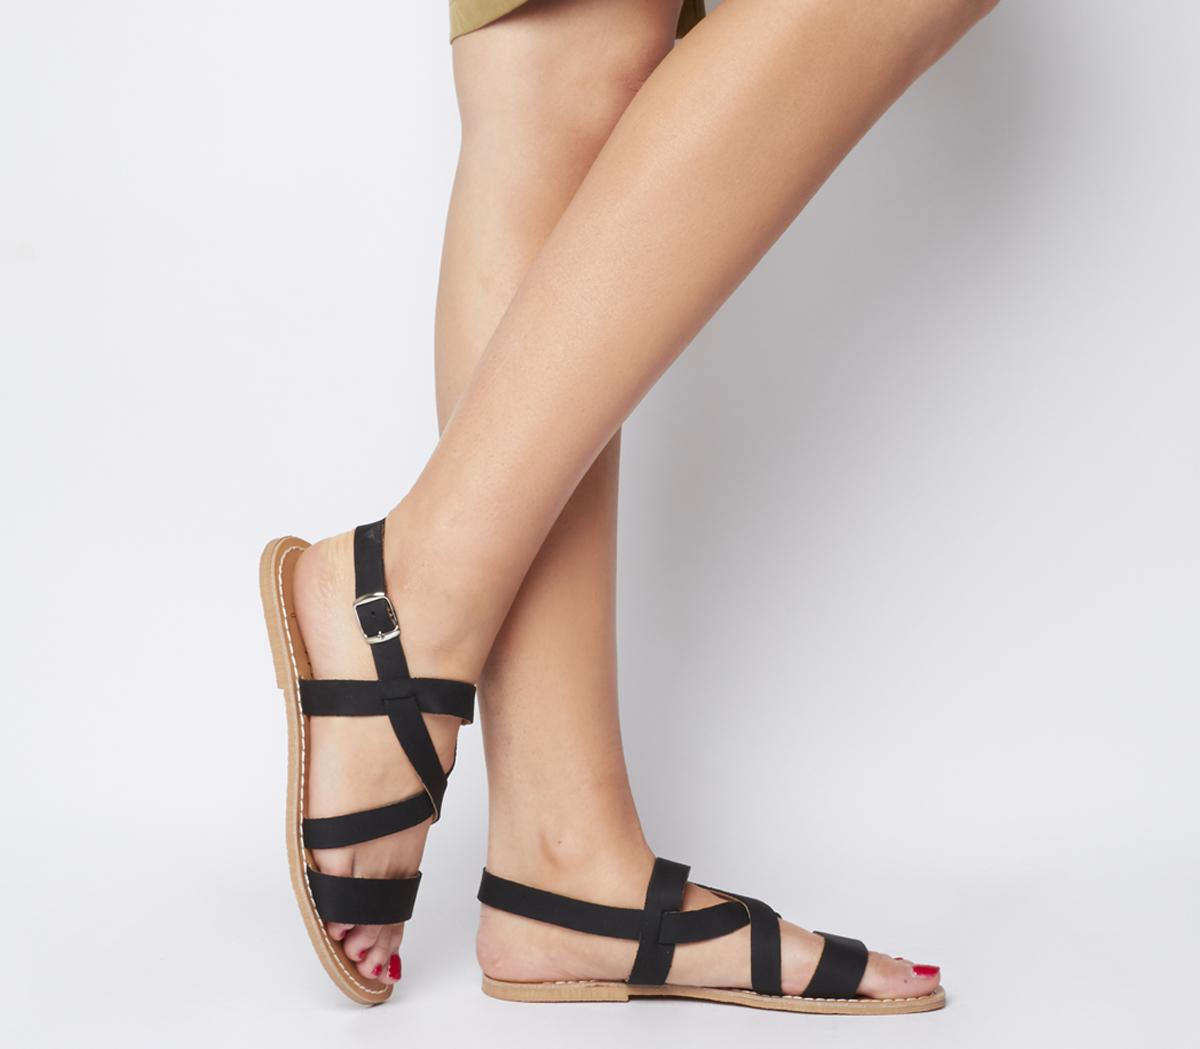 Solillas Strappy Sandals